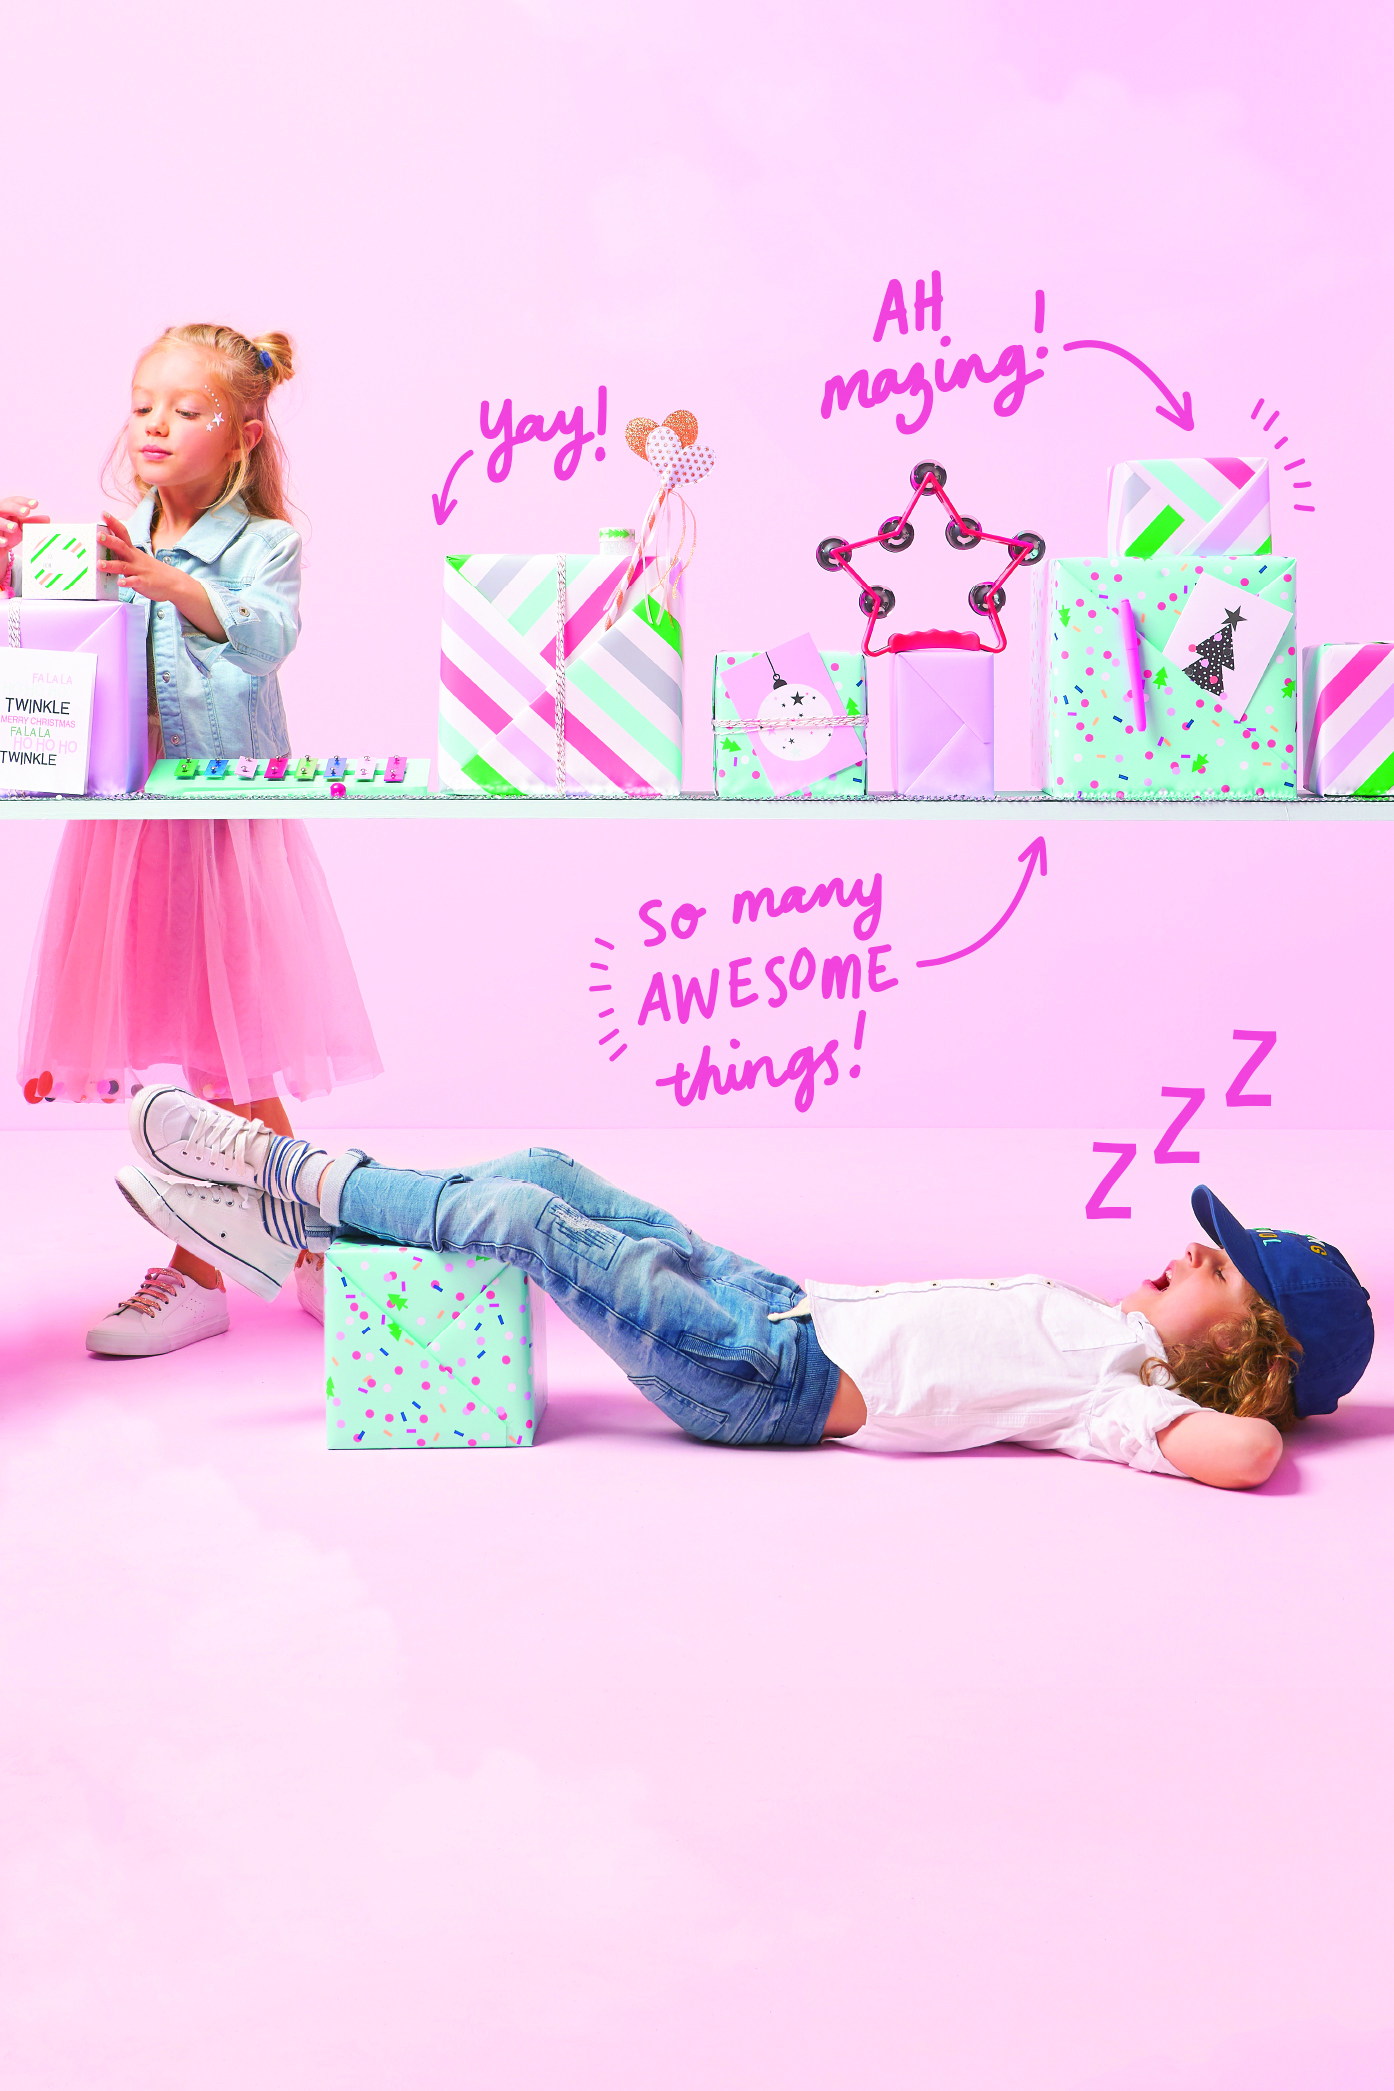 KC0013 KIDS AND FREE FY18 Q2 NOV AND DEC_TALENT BANNER 2_USA HK (1200x1800mm)_BACK_CMYK_PR.jpg